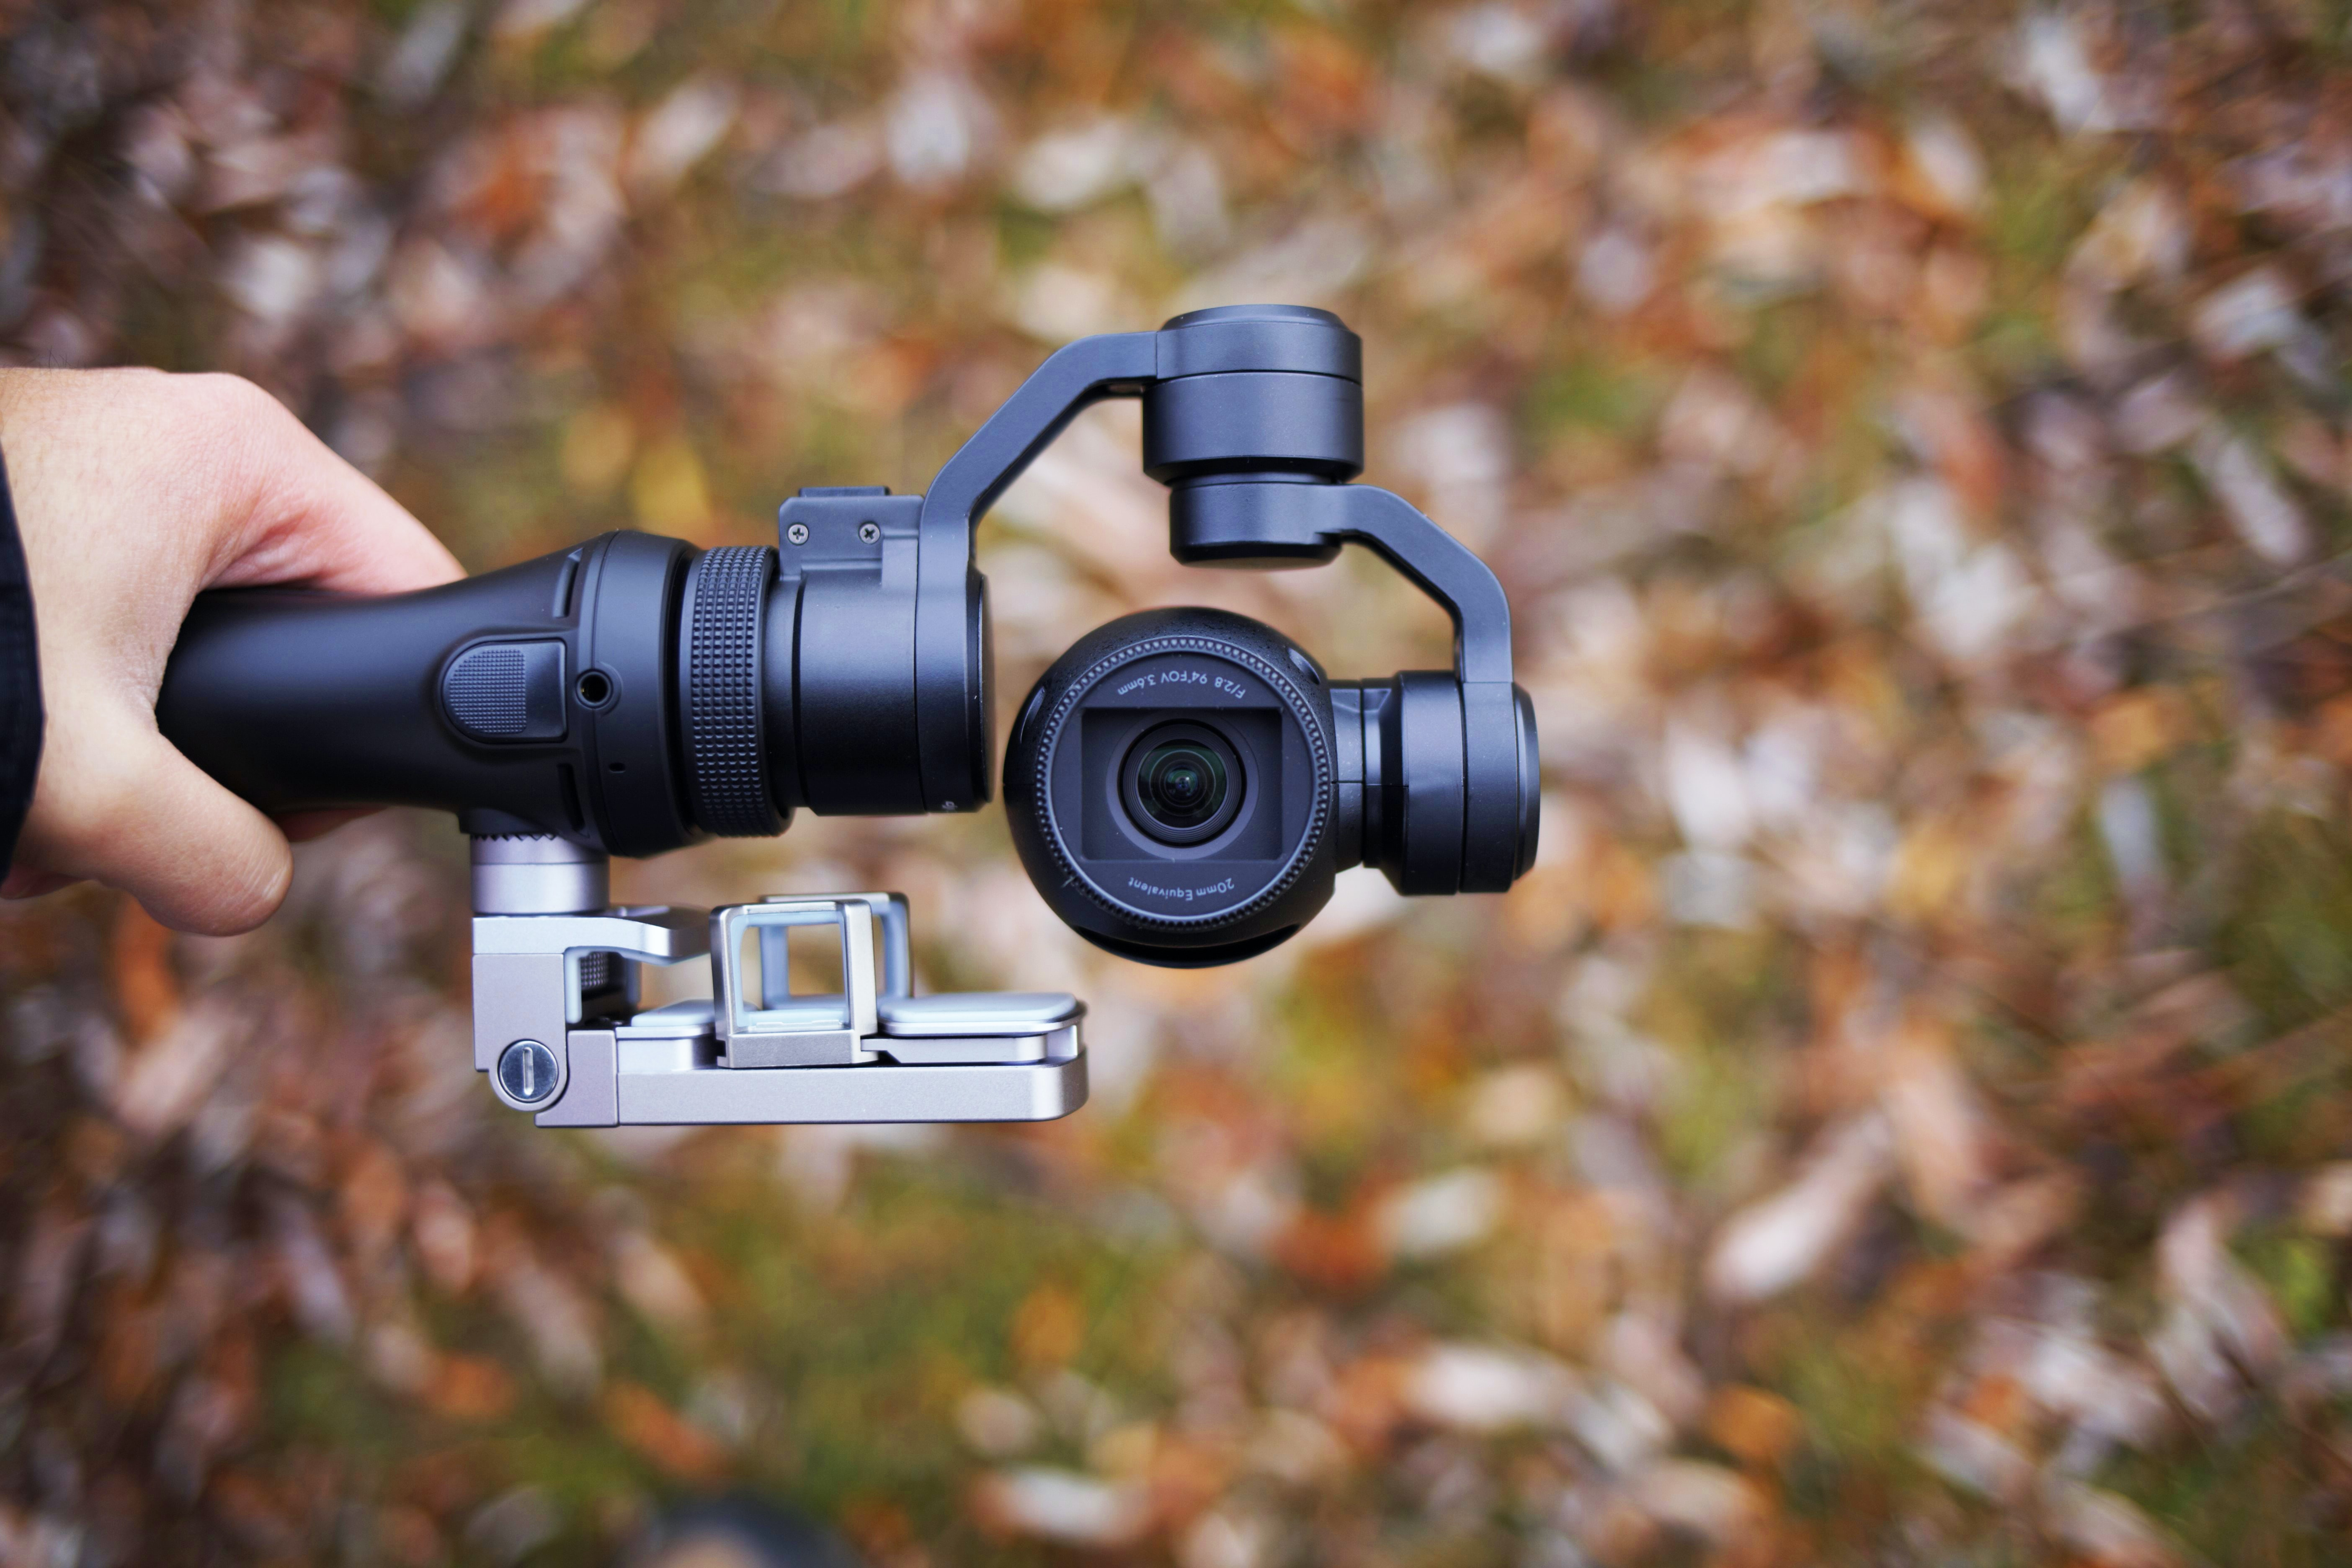 Person holding camera on stabilizer tripod beside red autumn leaves